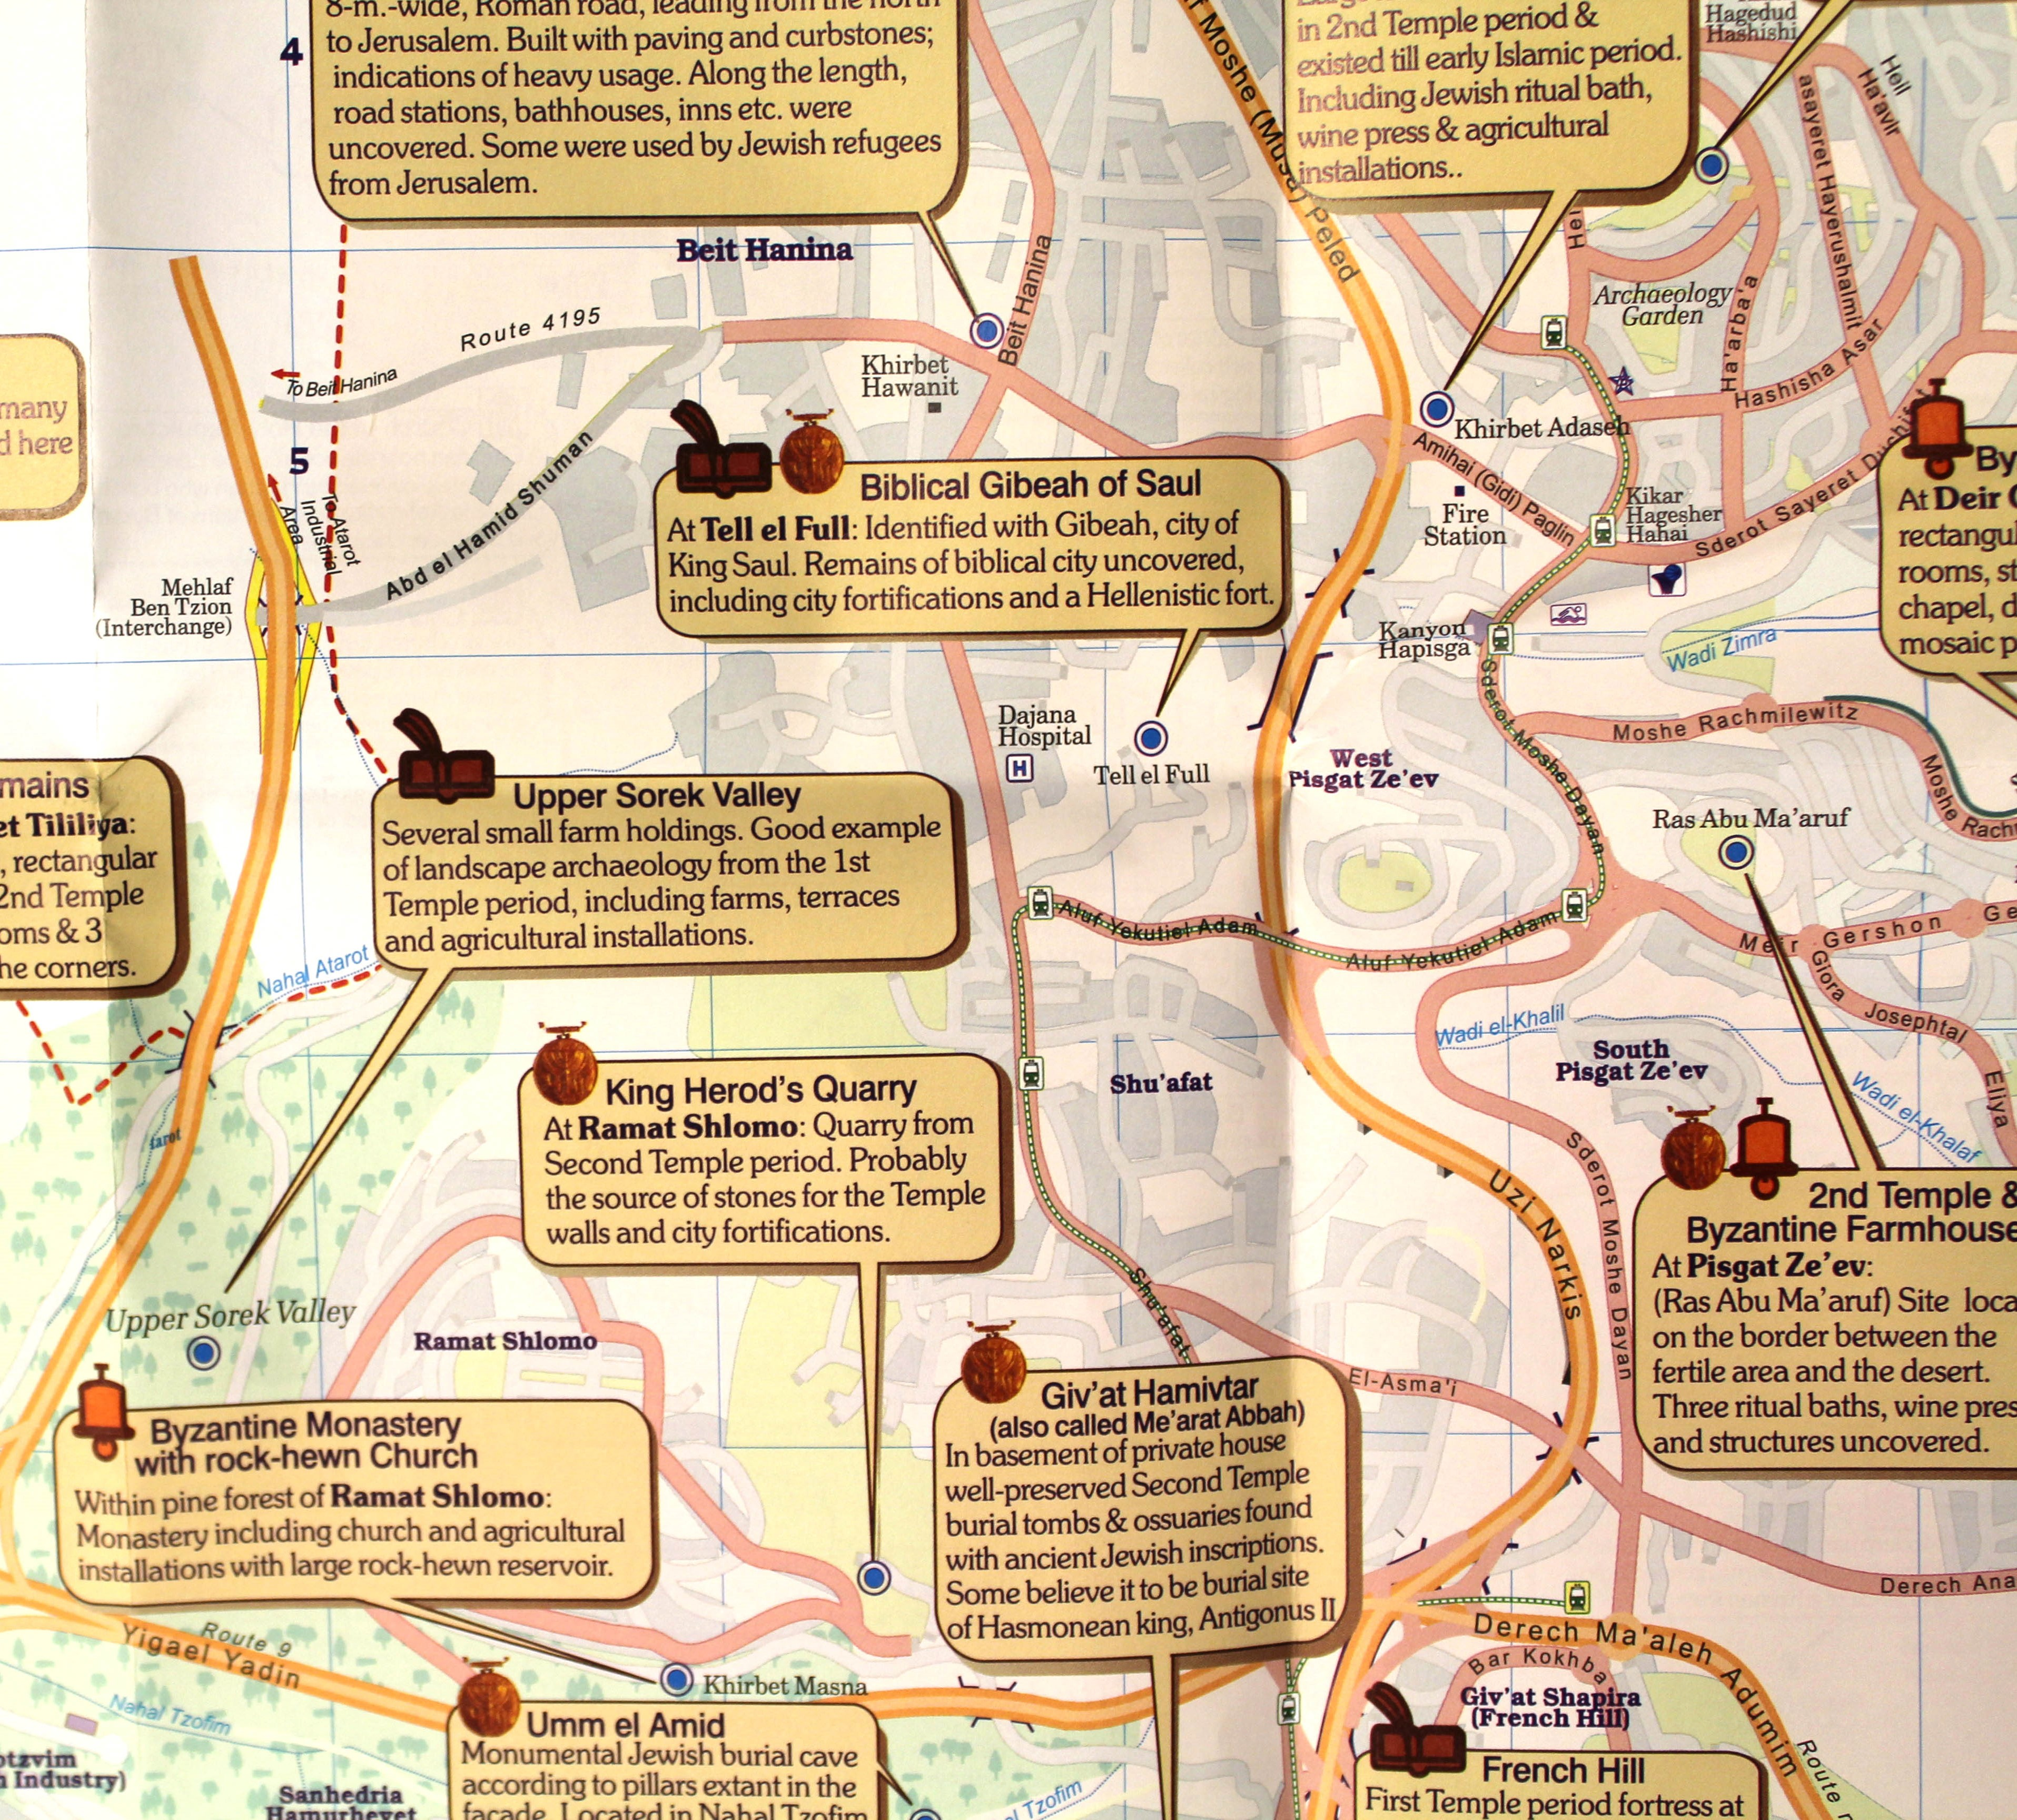 Carta's Newest Maps: Jerusalem: Biblical Archaeology and ... on signposts of the times, jordan river israel bible times, map of middle east during bible times, map of moab bible times, map of bethel in bible times, maps from the bible, maps of babylonian conquest of judah, maps of the bible then and now, map of corinth in bible times, maps of ancient israel bible, map of sea of galilee in bible times, map of ancient bible times, maps of bible history online, map of shechem in bible times, israel in roman times, maps of middle east in time of moses, israel in new testament times, maps of roman empire over time, maps of mesopotamia that you can label, maps of babylon bible,